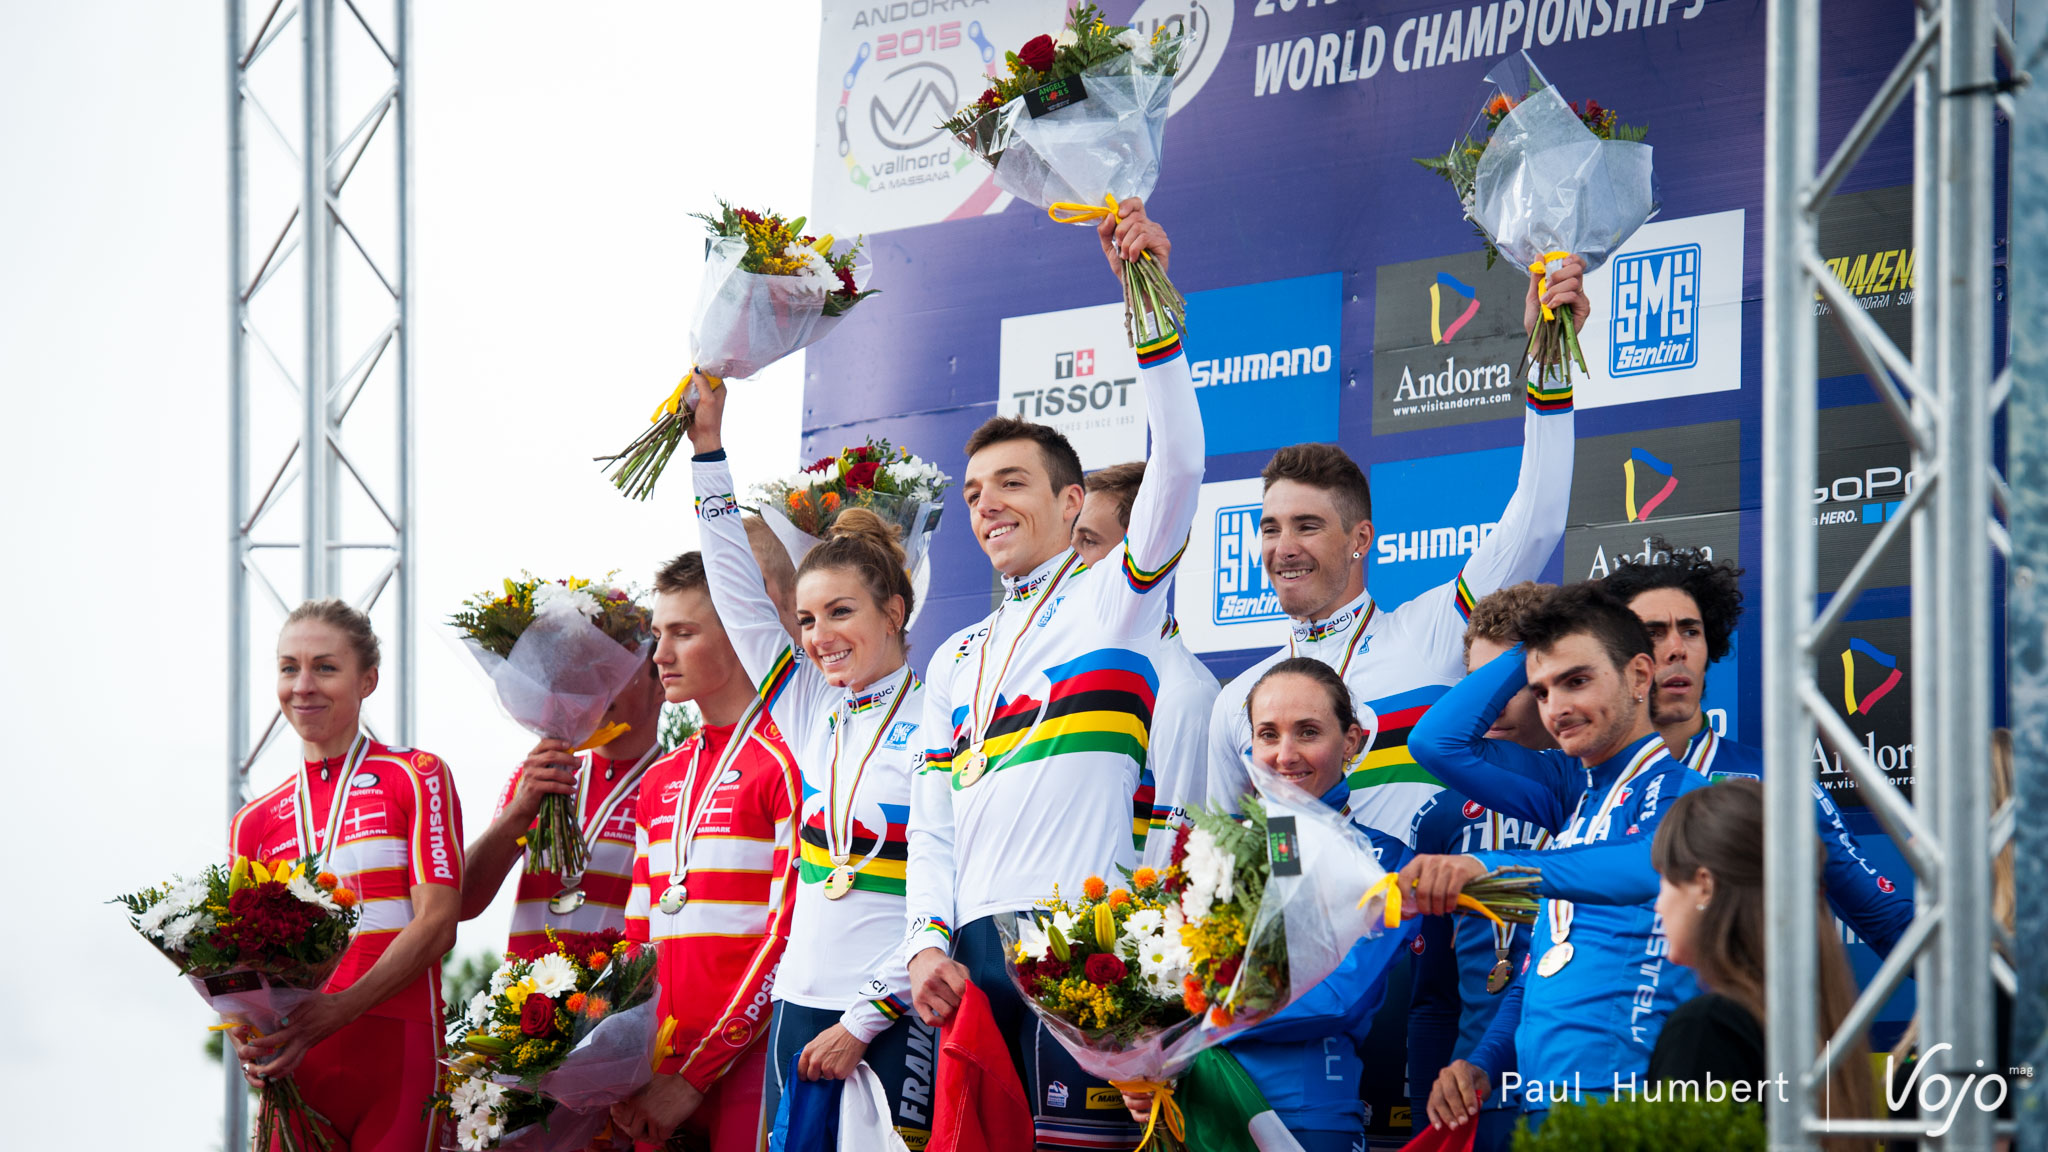 Worldchamps-2015-vojo-paul-humbert-xc-relai-24